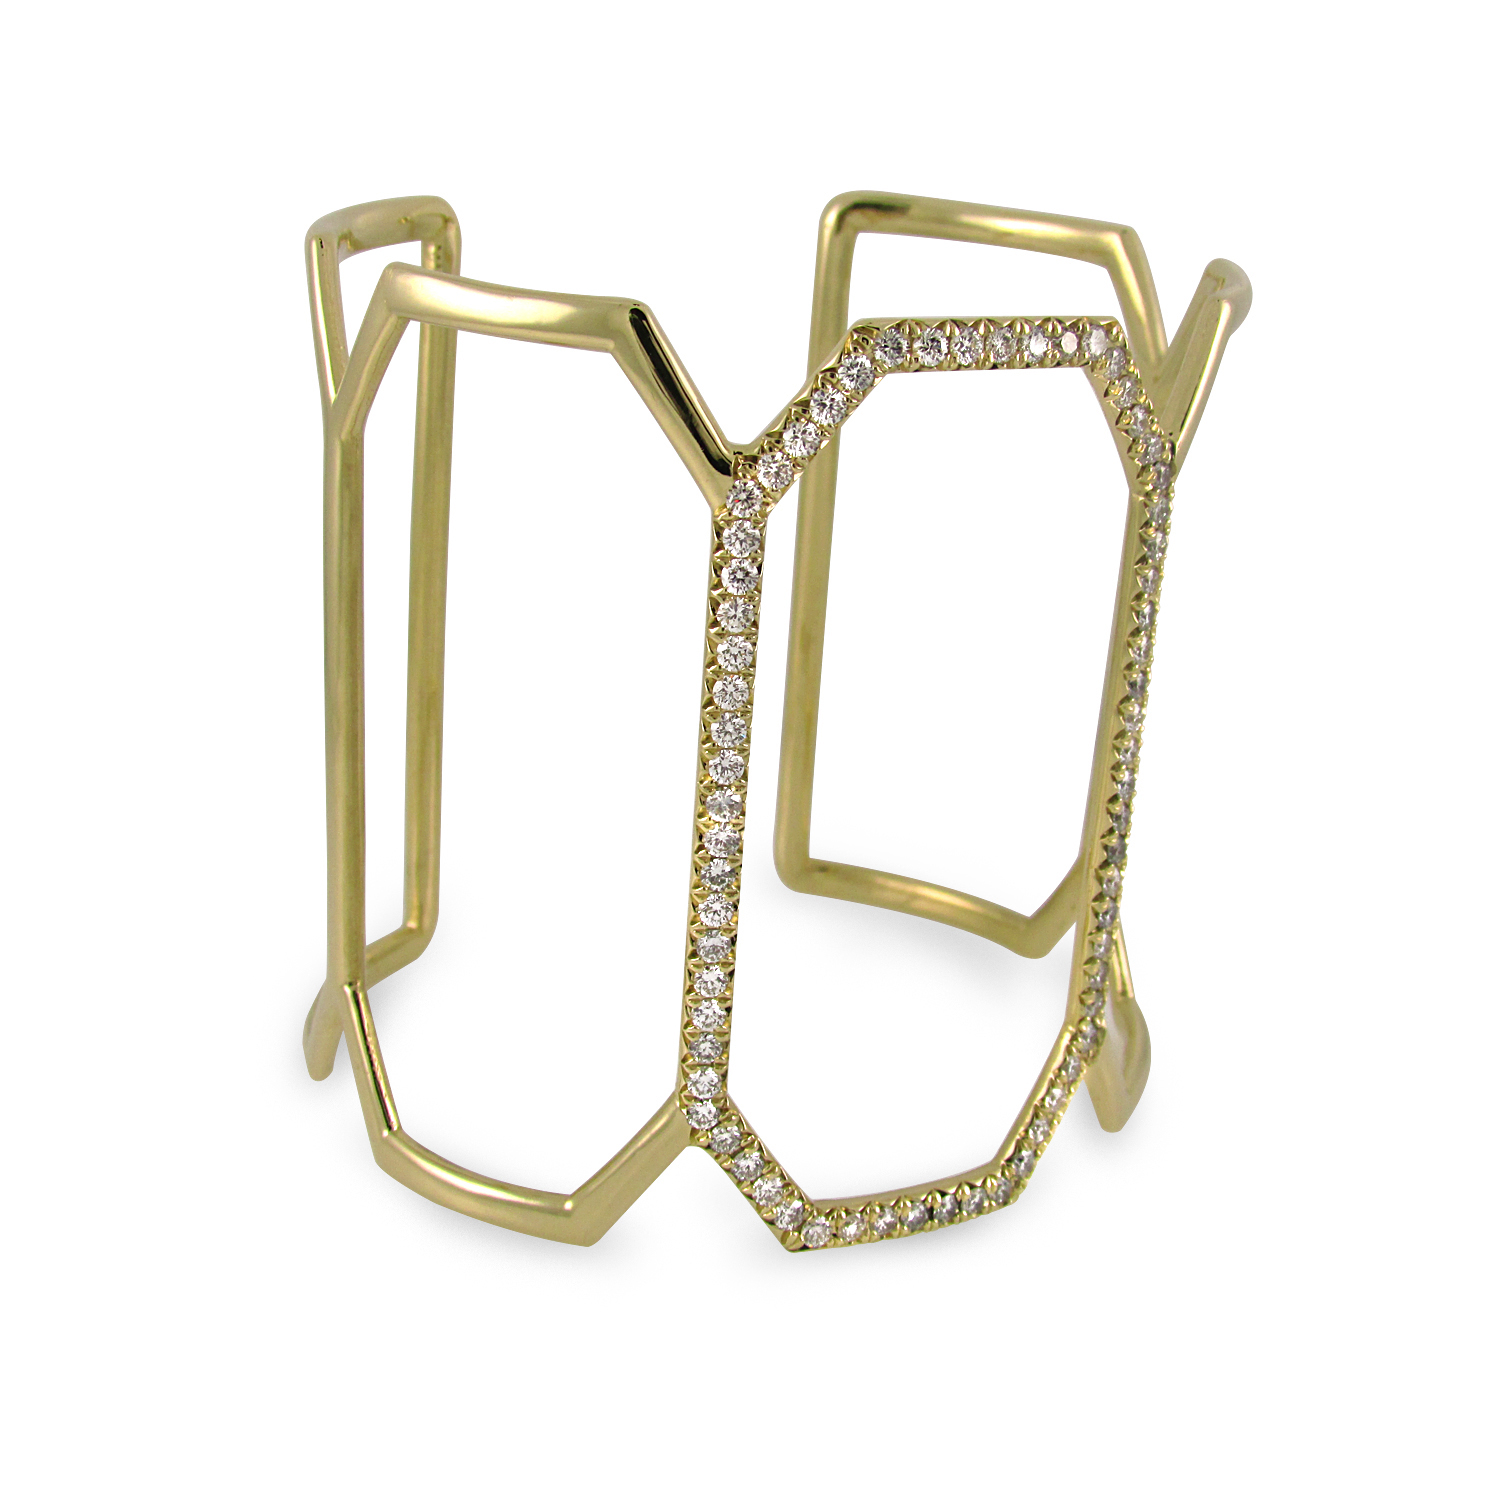 18KT yellow gold openwork cuff designed as 5 octagonal links; the center link is pavé set with 2 carats of round diamonds.